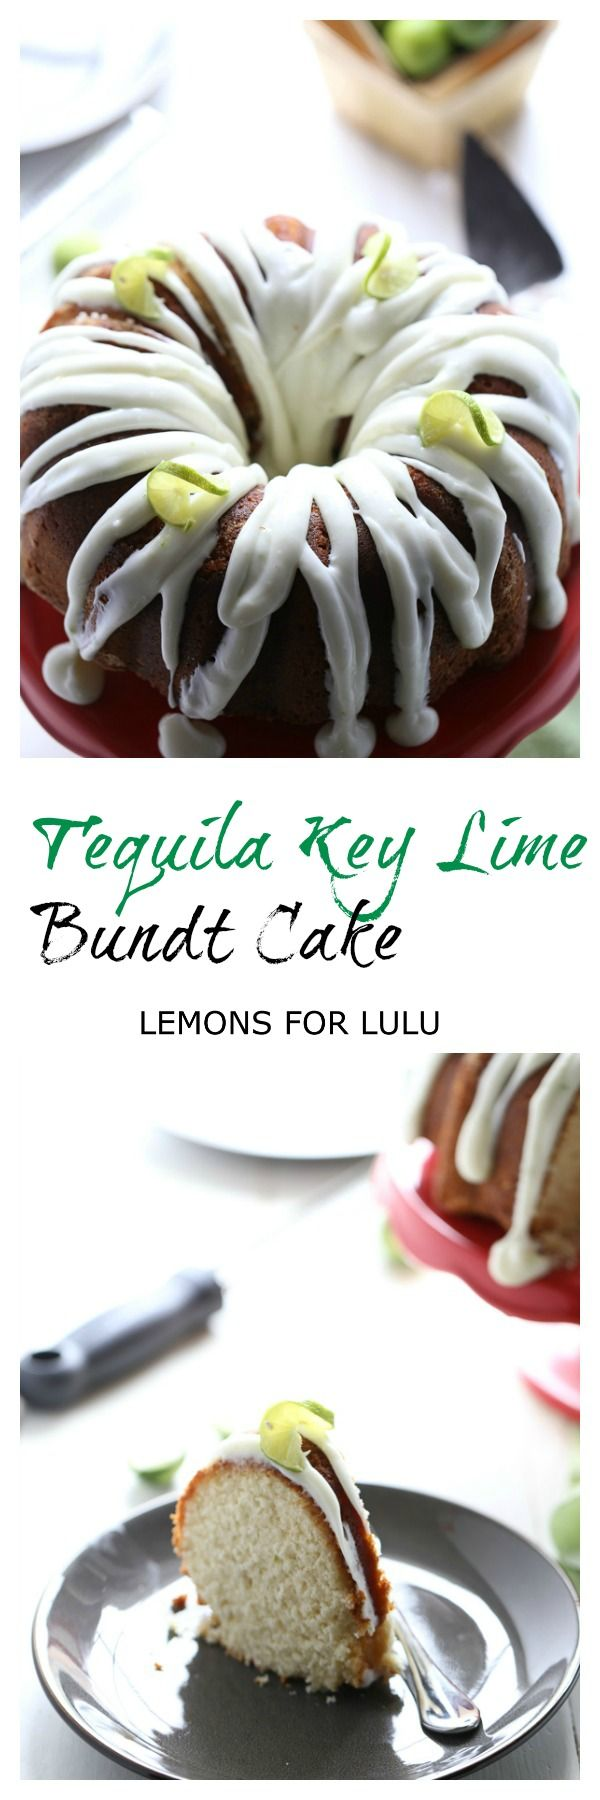 This easy bundt cake is infused with a touch of tequila and filled with the bold, citrusy taste of key limes! lemonsforlulu.com